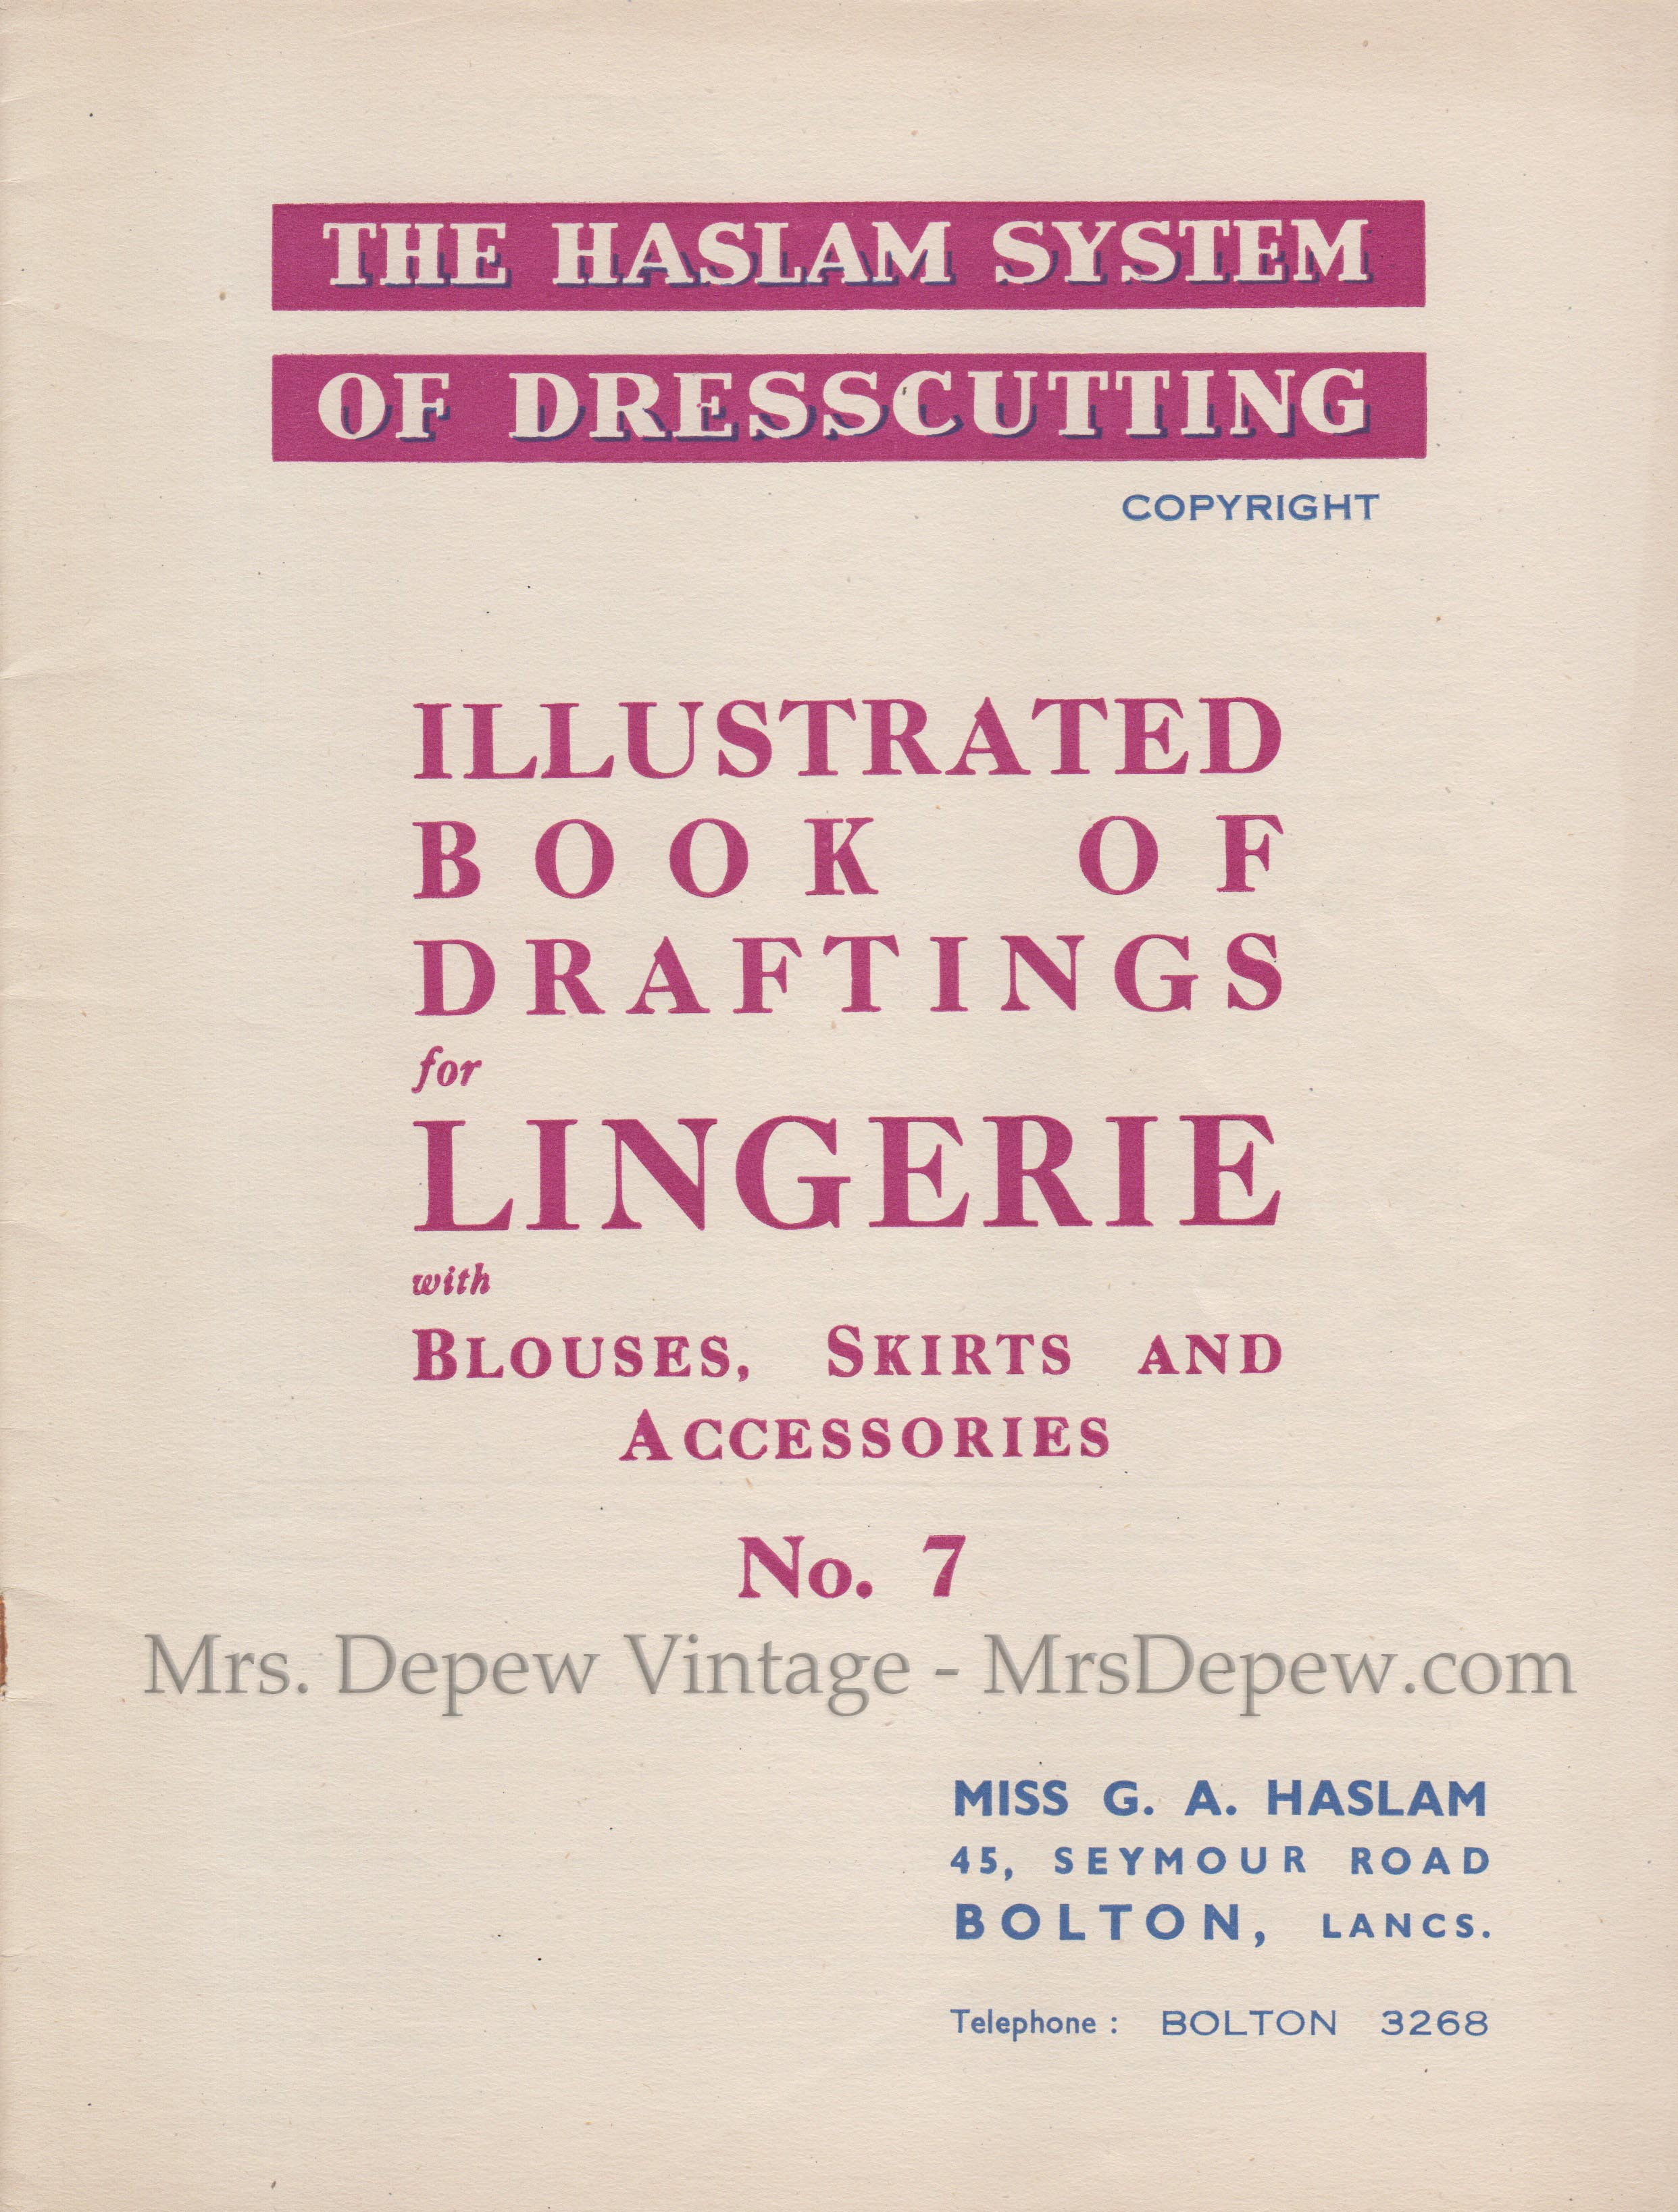 Haslam System of Dresscutting Lingerie No. 7